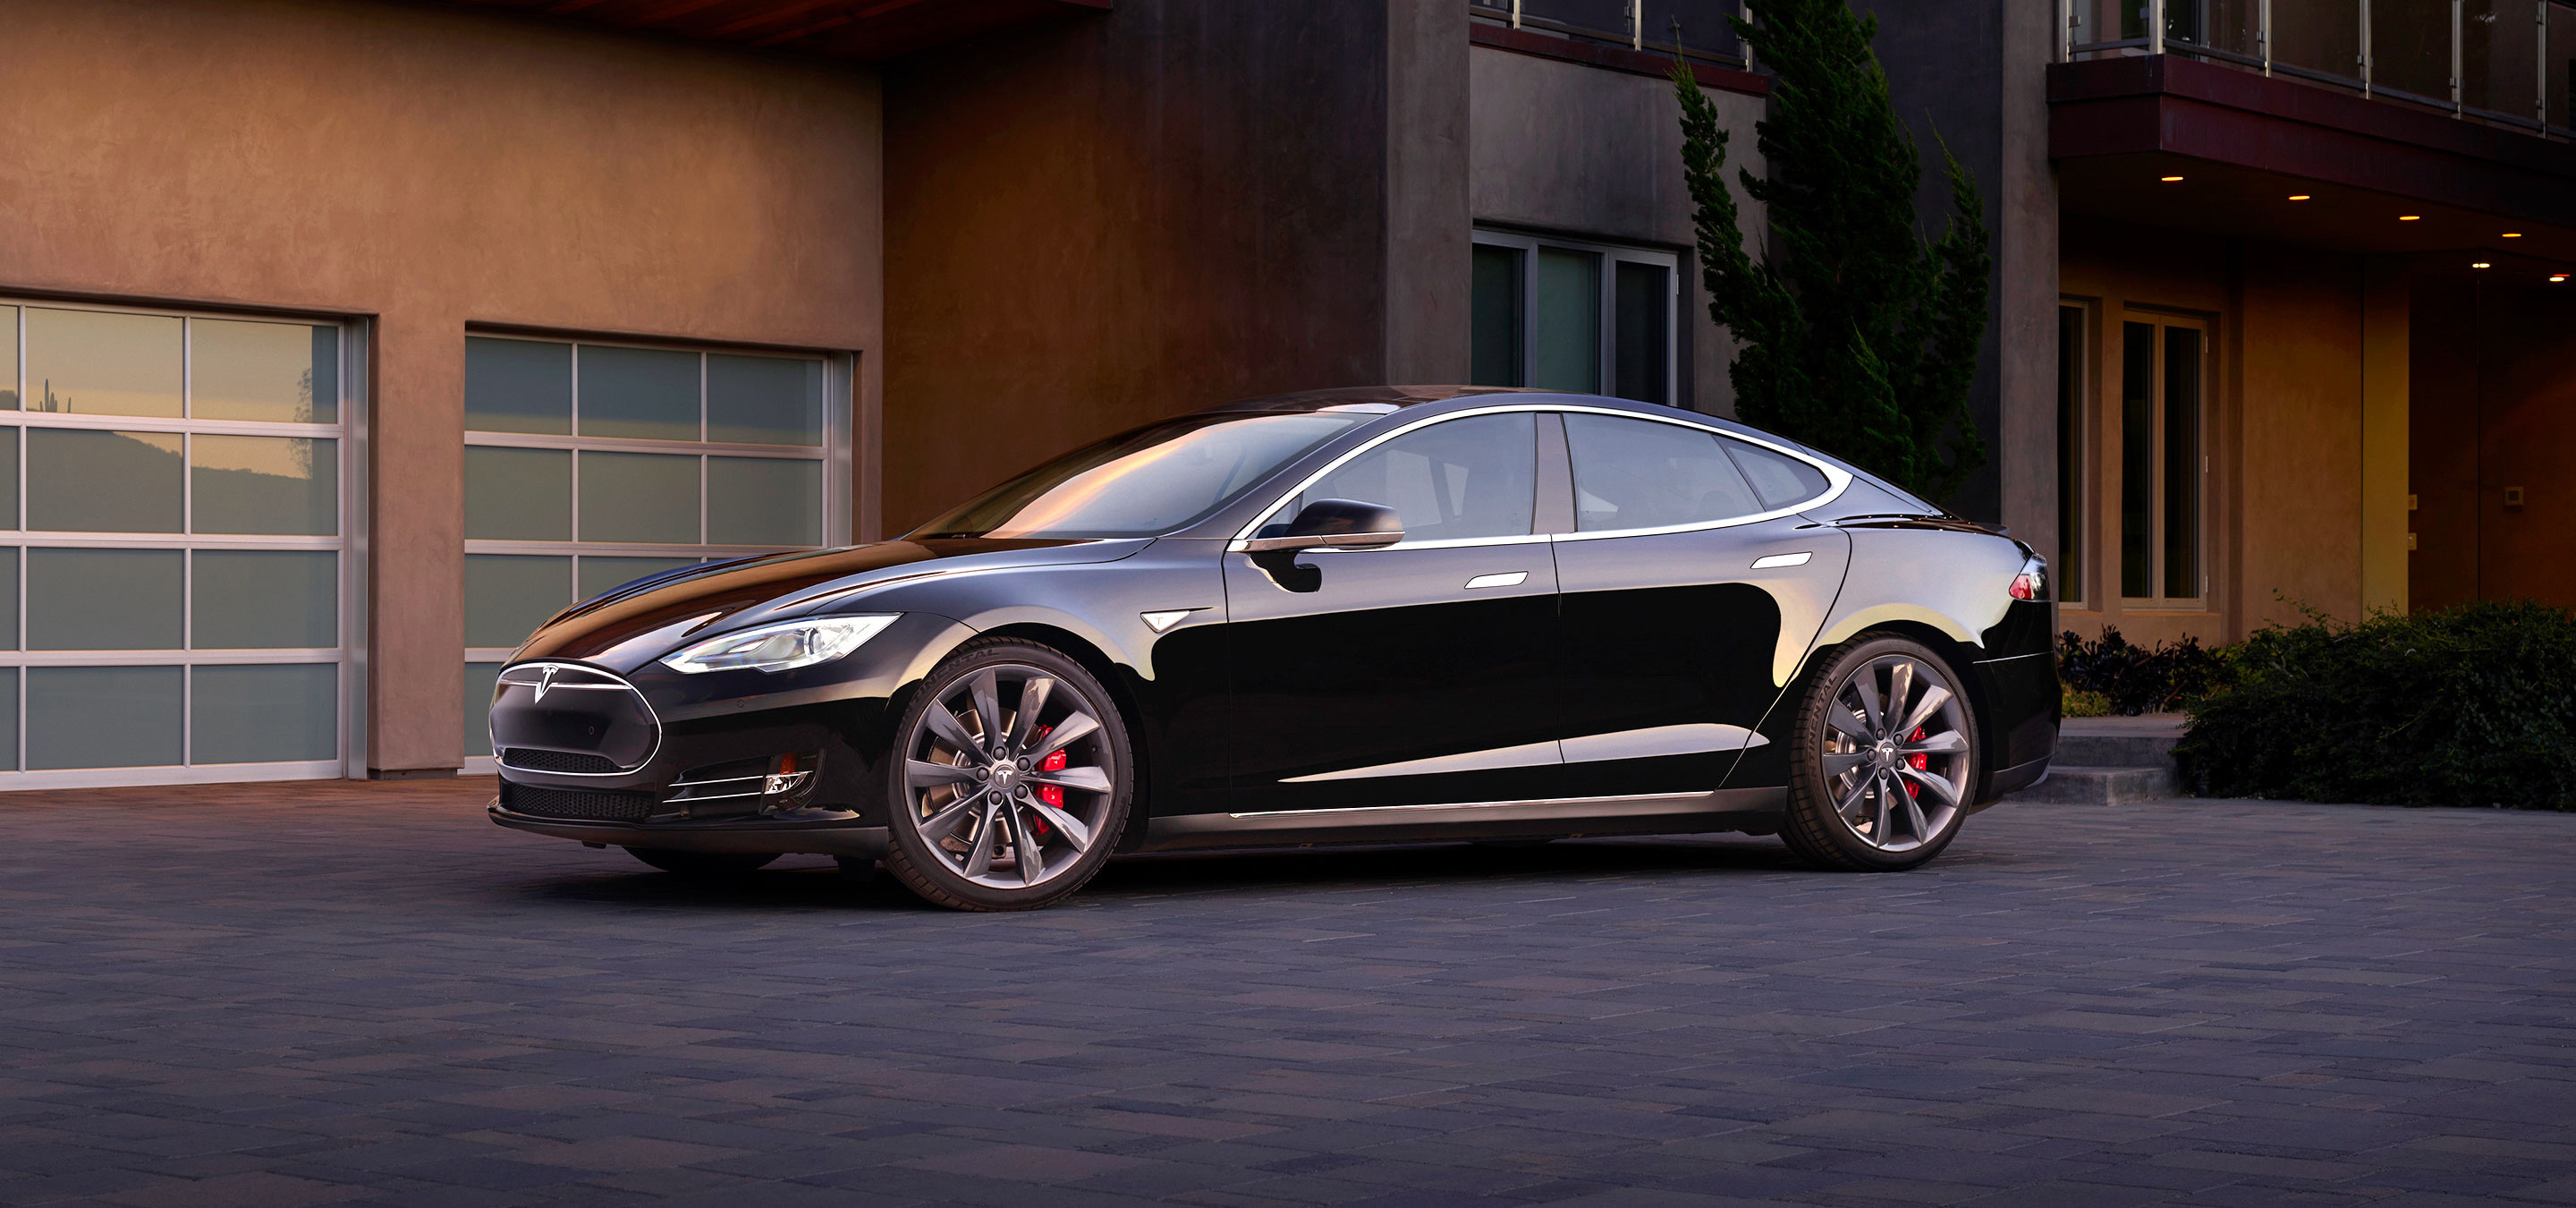 2015 tesla model s styling review the car connection. Black Bedroom Furniture Sets. Home Design Ideas